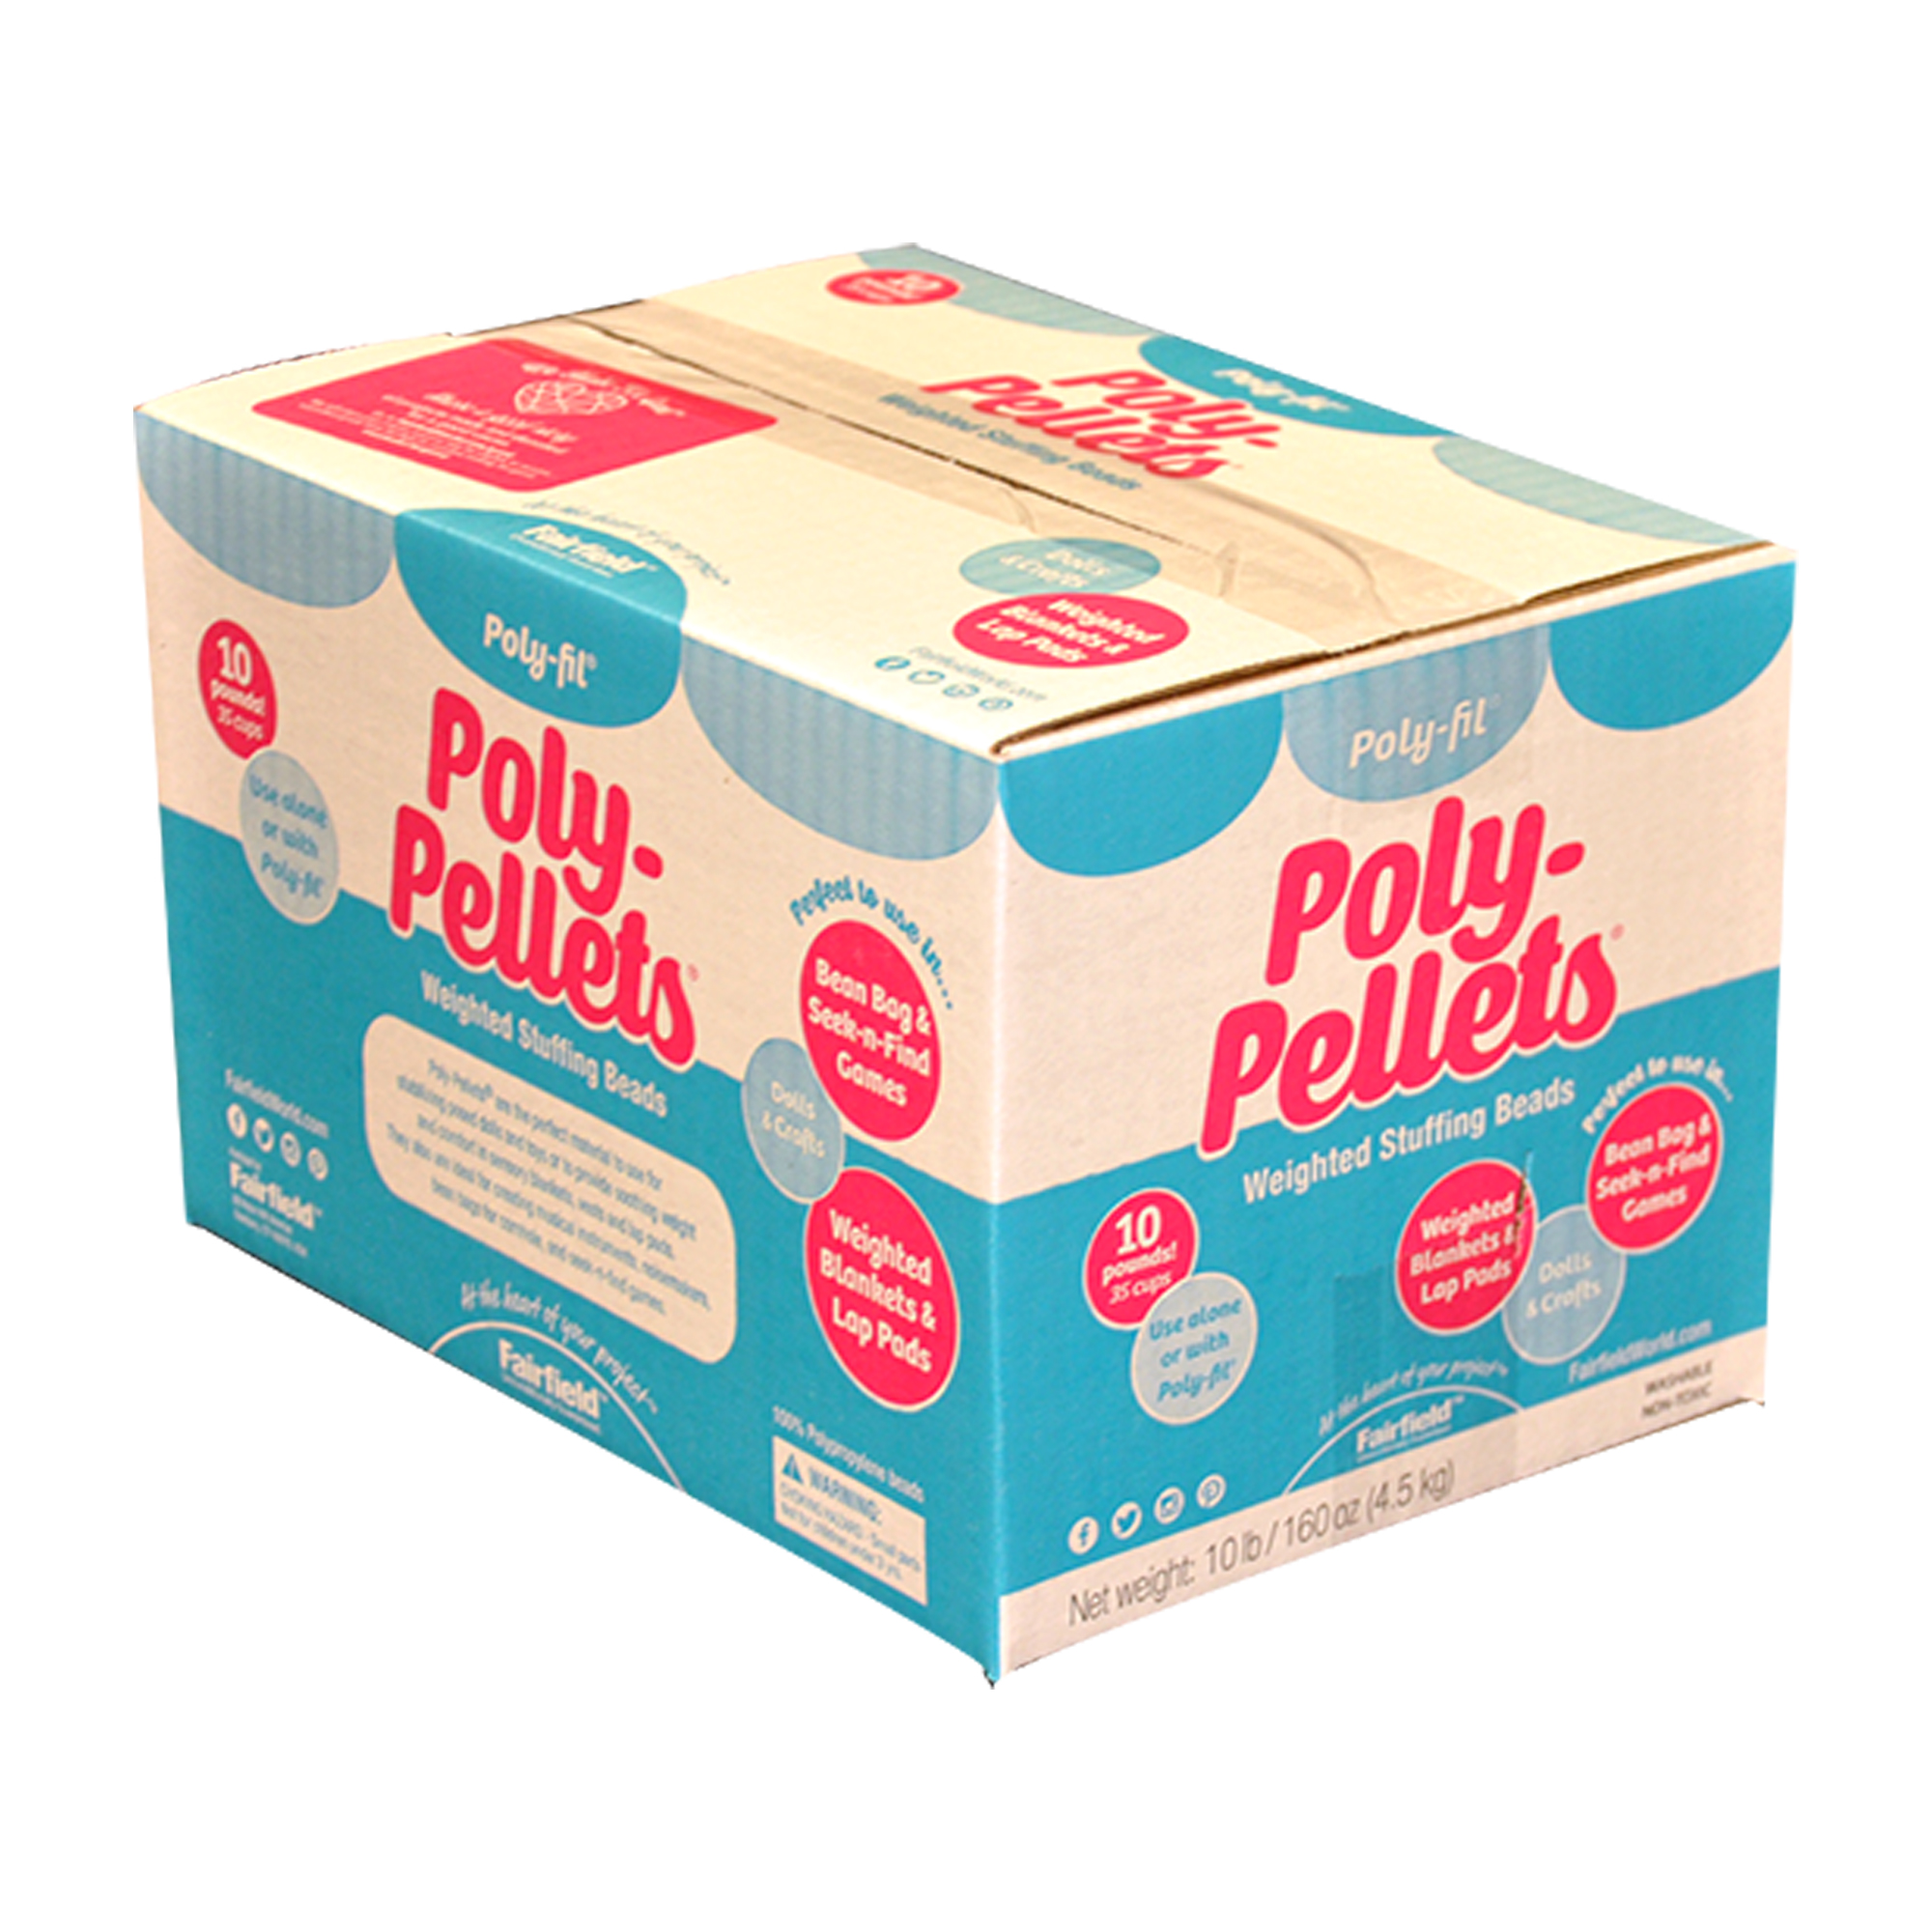 Poly-Fil Poly-Pellets Weighted Stuffing Beads, 10lb Box